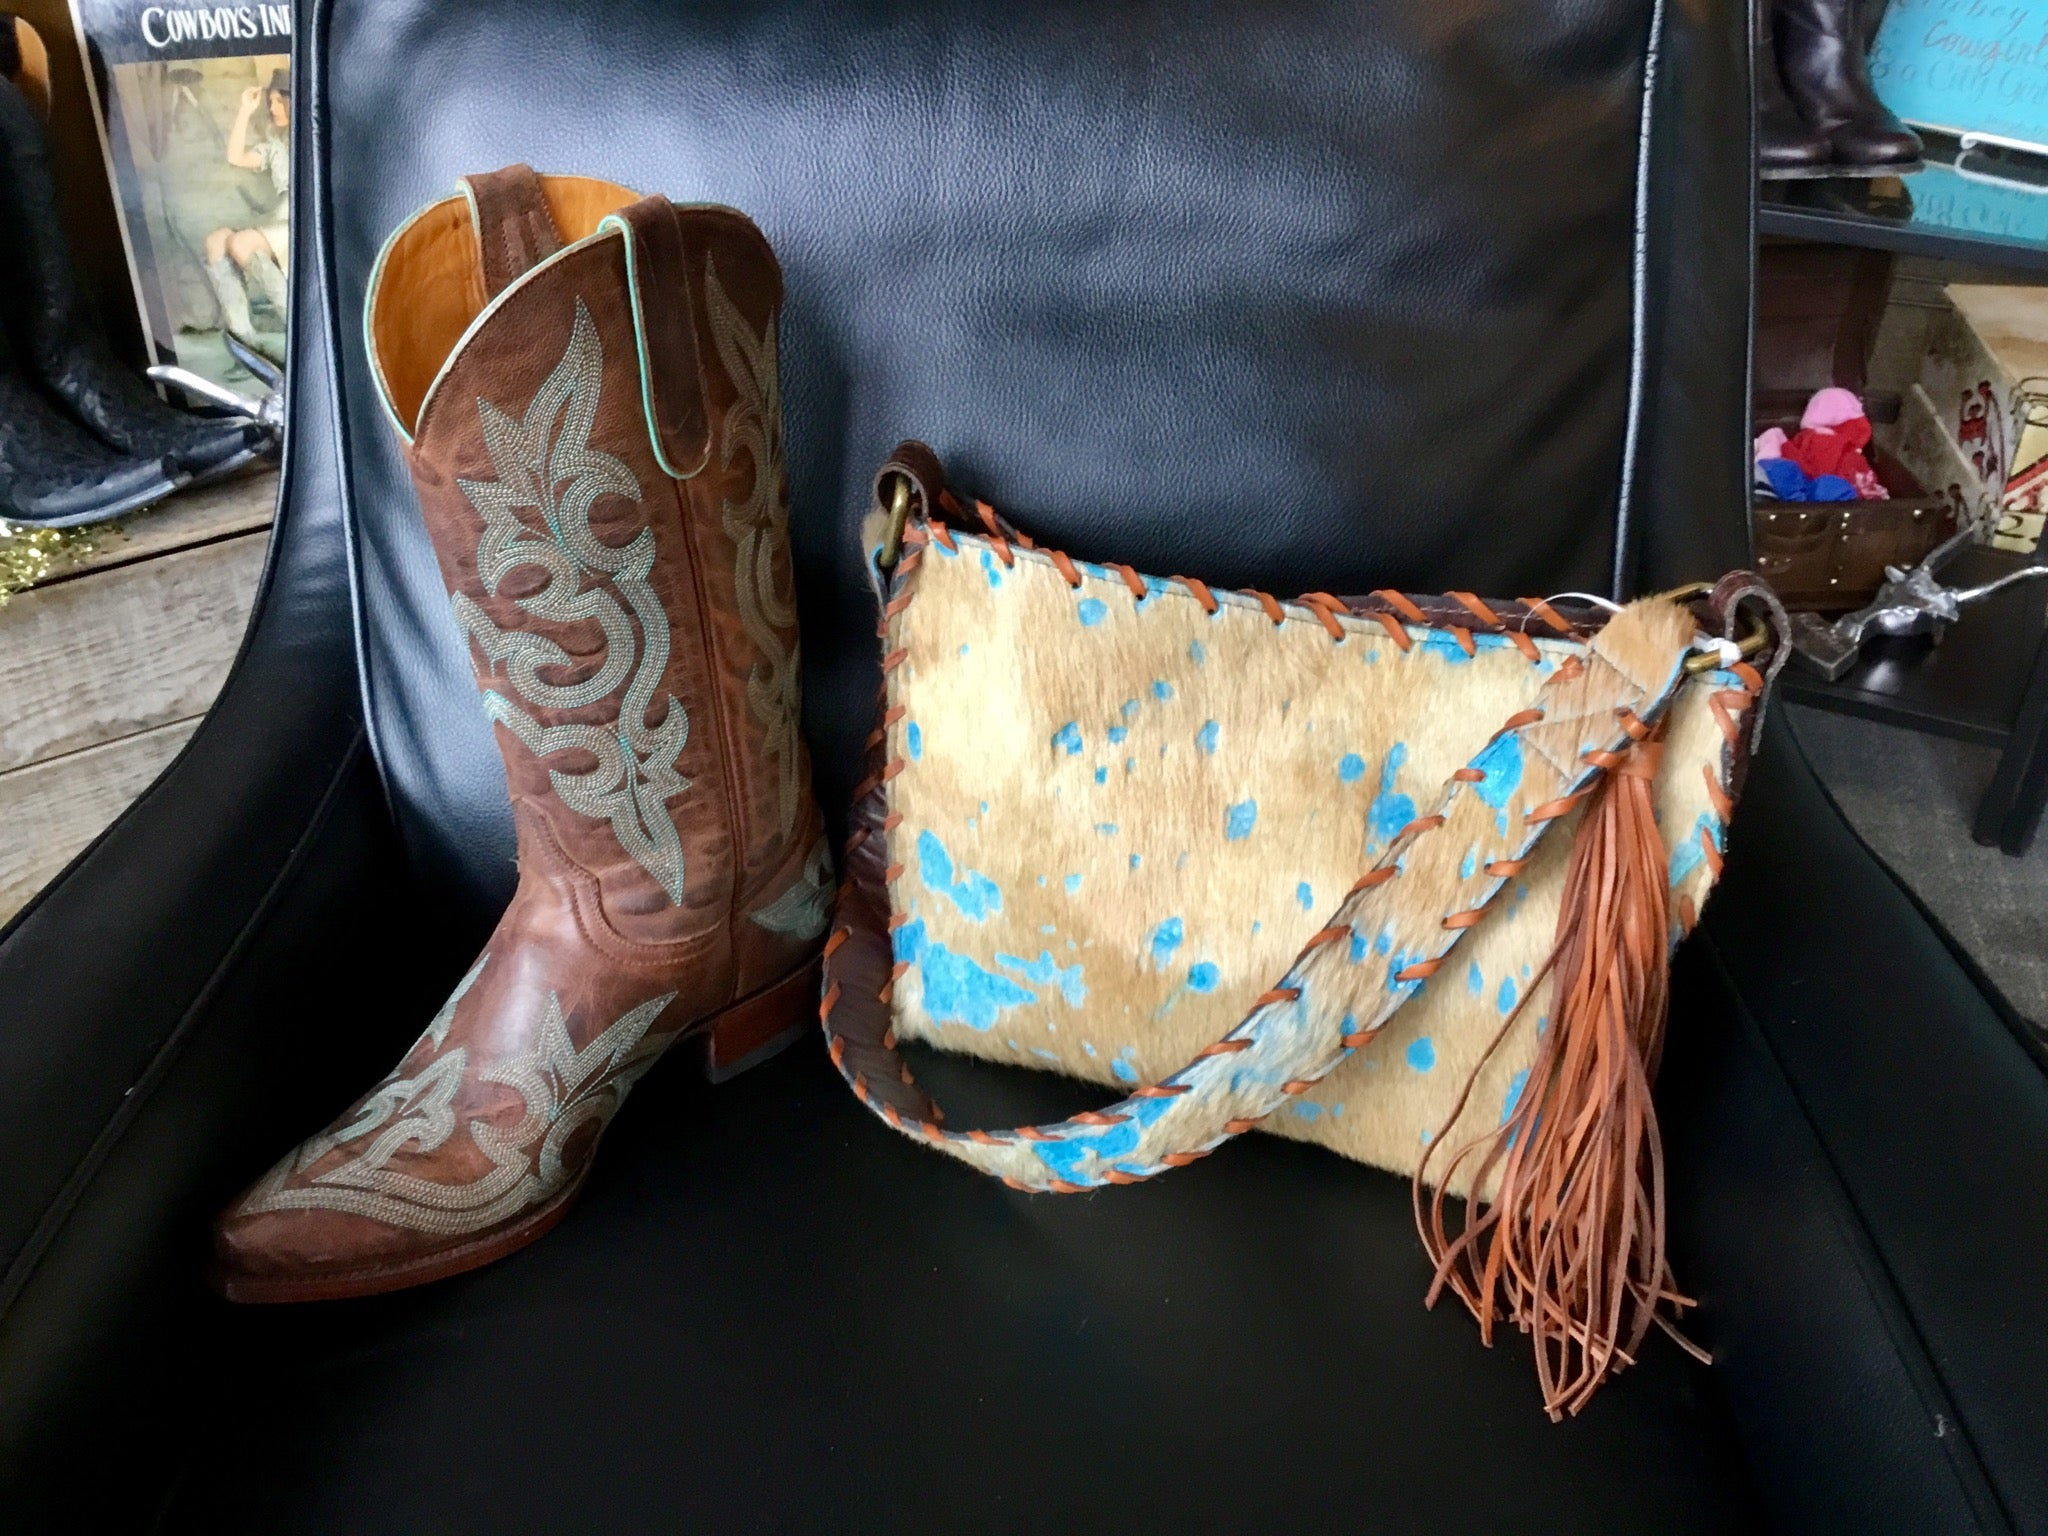 Cripple Creek Creations Turquoise and Tan Acid Wash on Cow Front